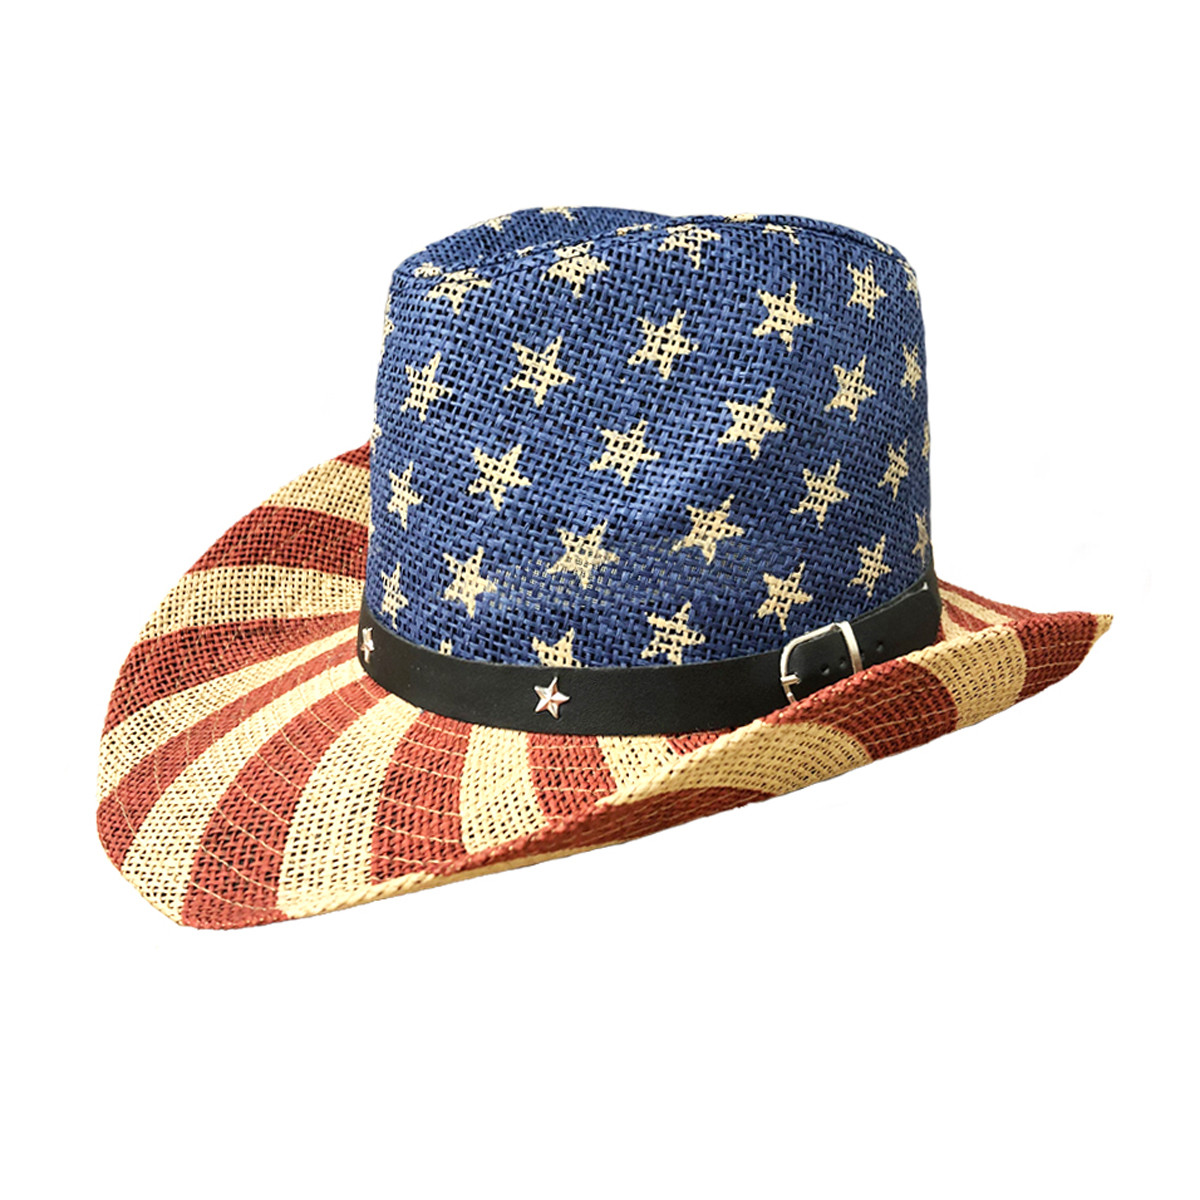 838c22aaf0959e American Flag Cowboy Straw Hat Old Glory